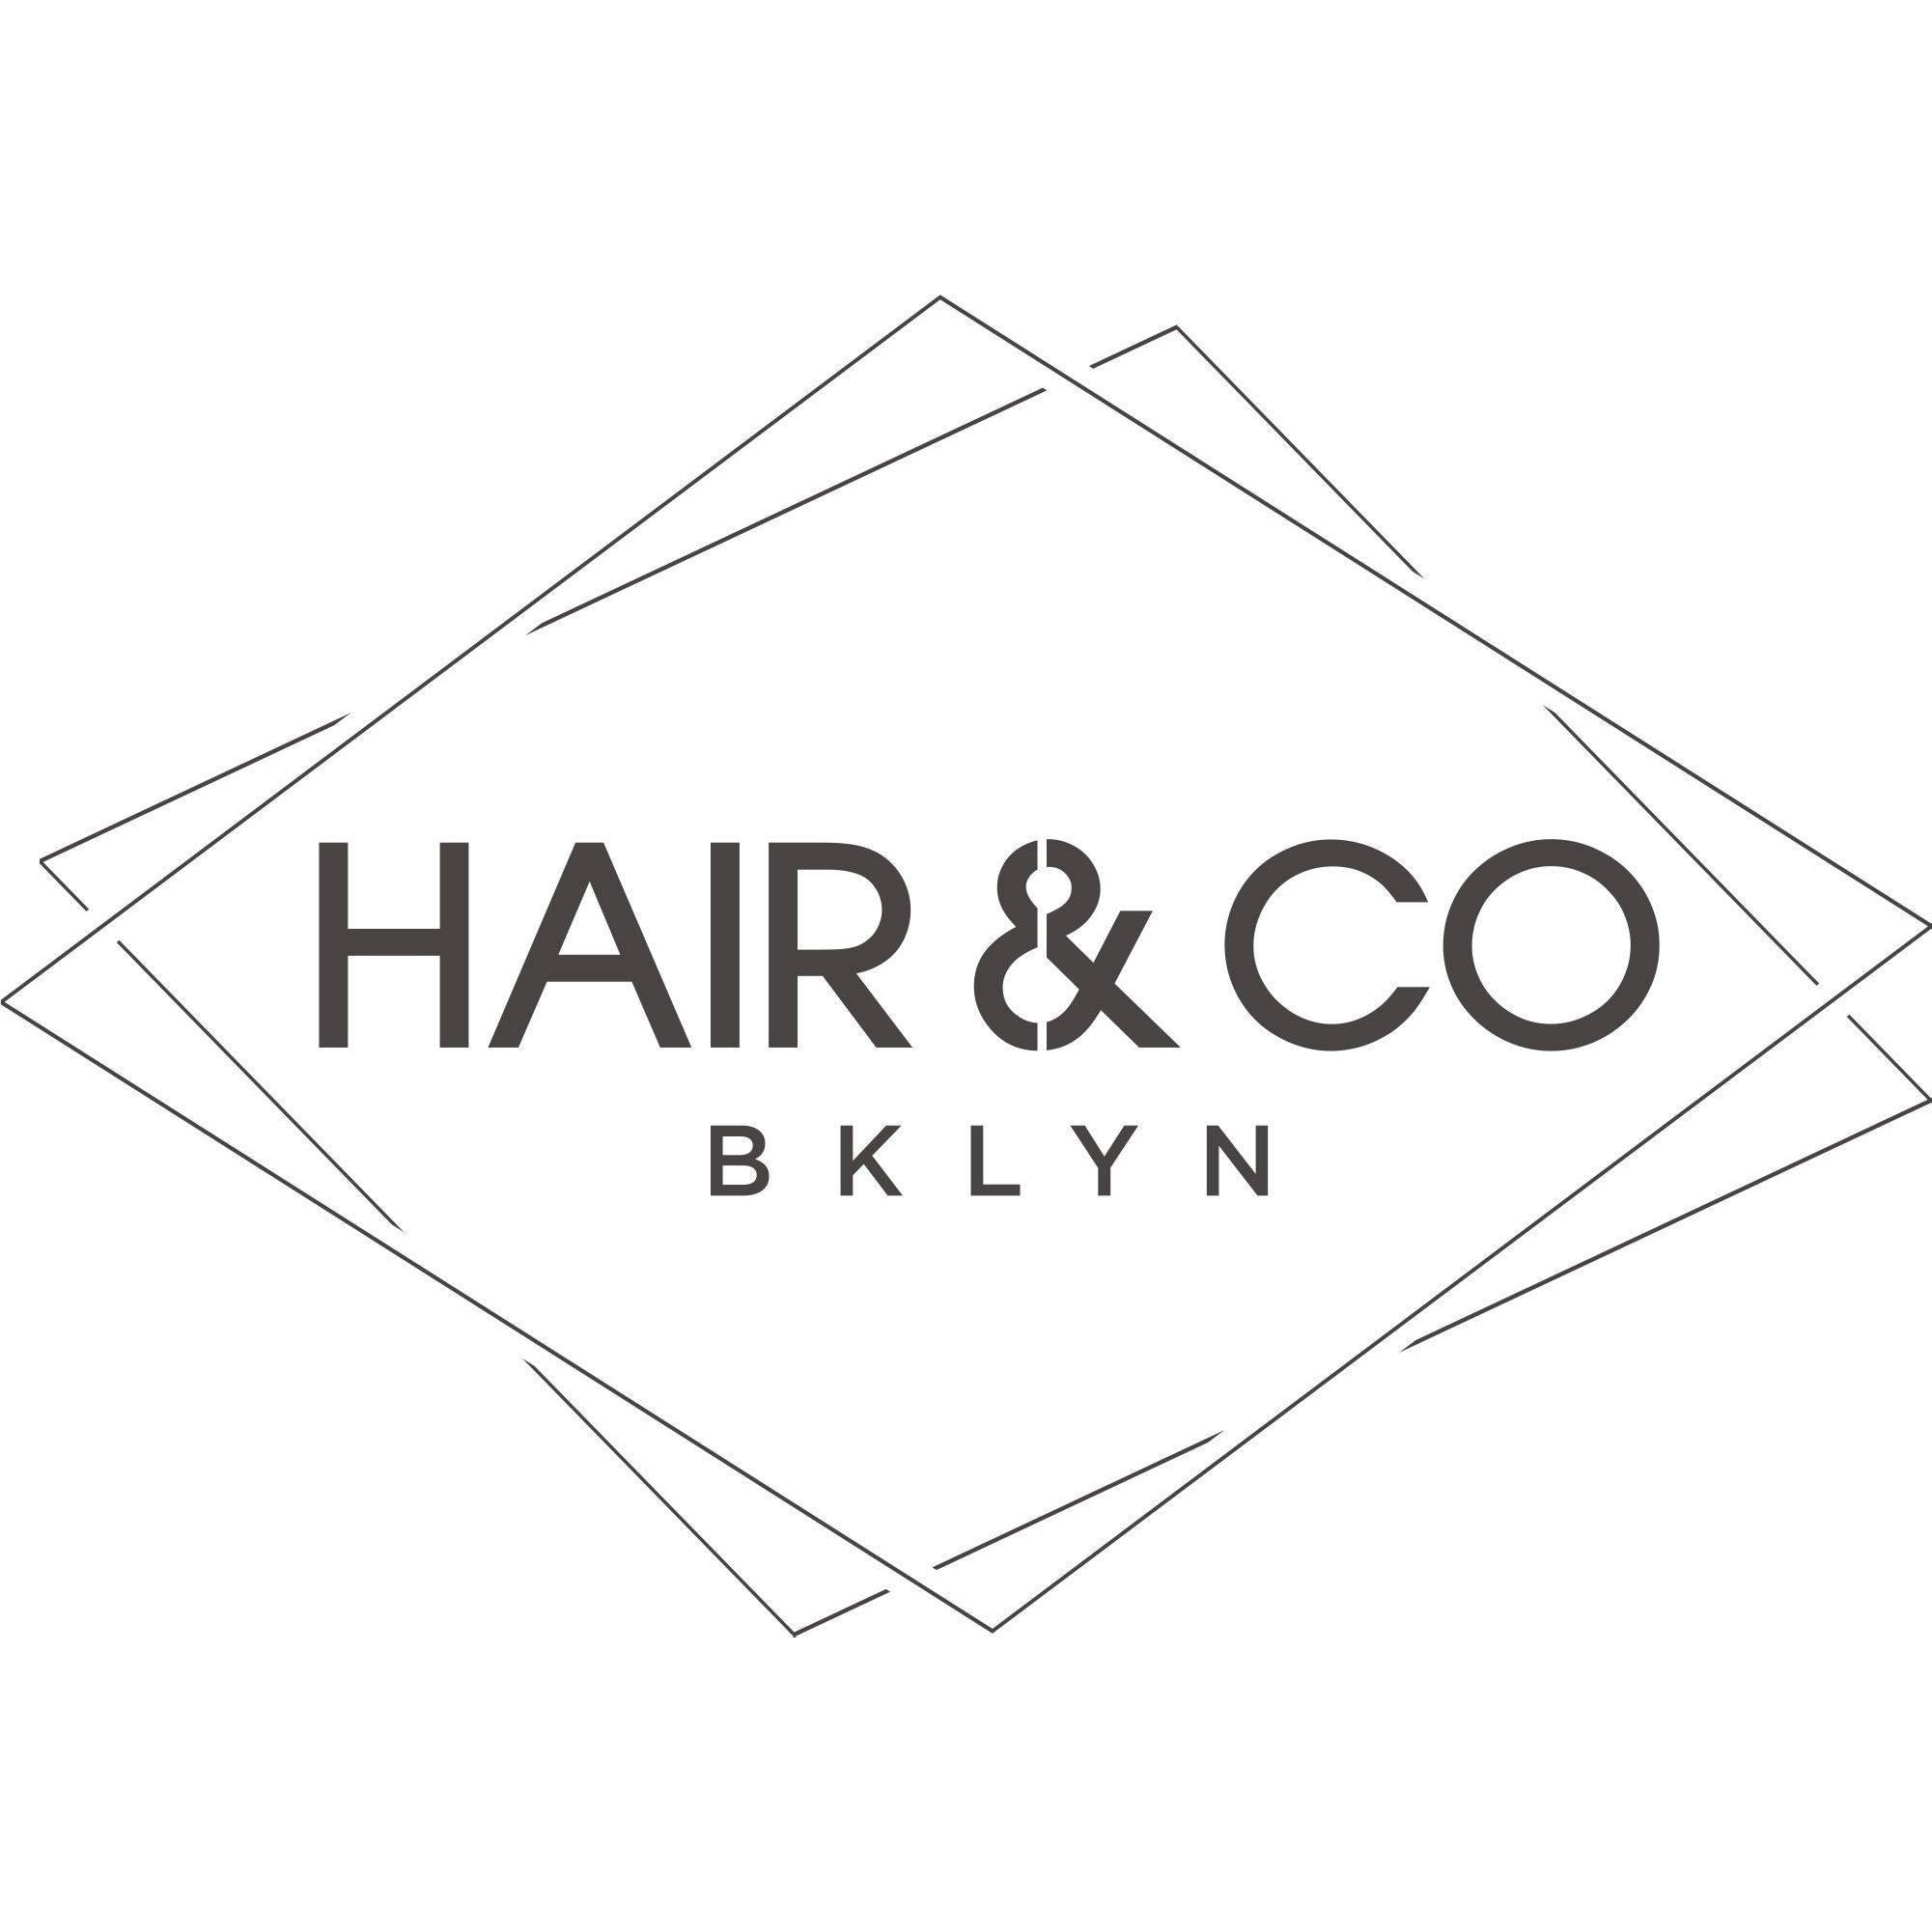 Hair & Co BKLYN